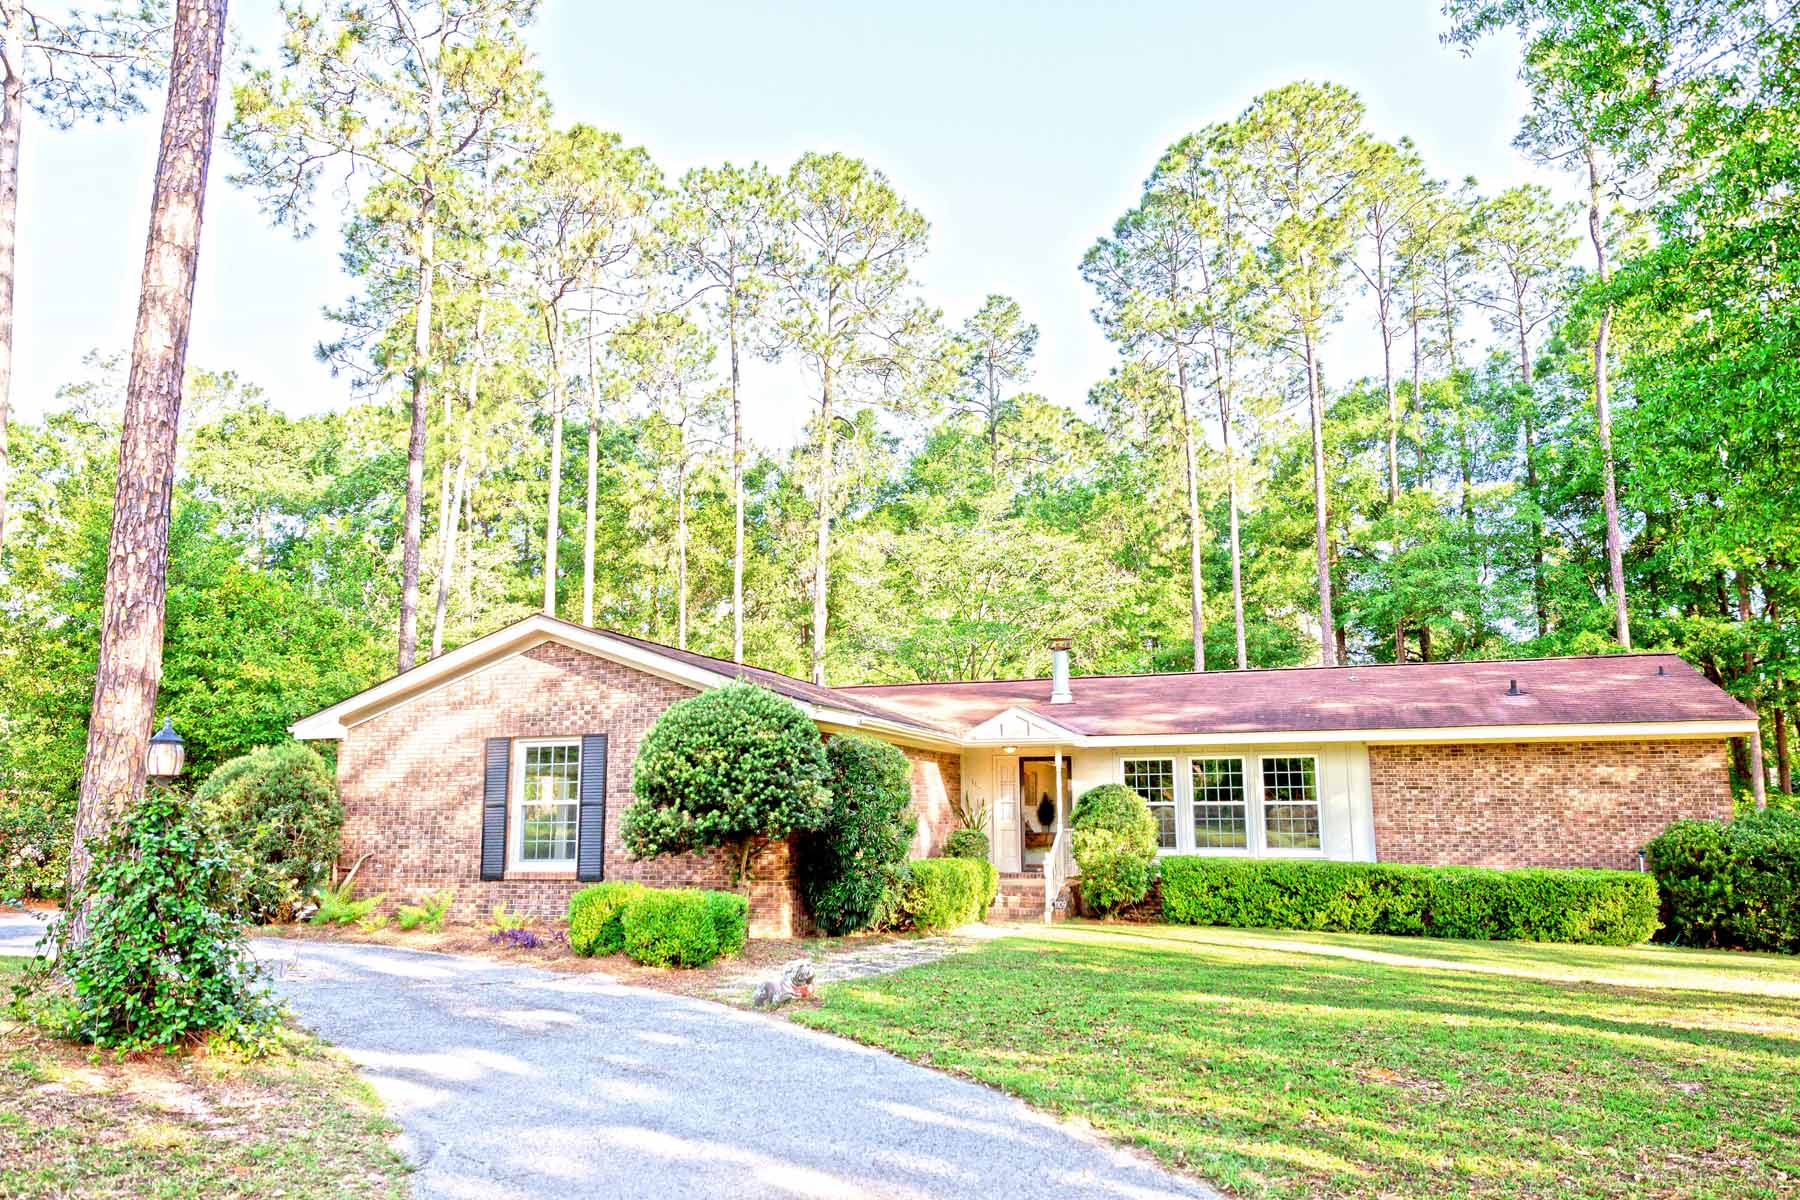 Single Family Home for Active at Lake Douglas Cottage 1109 Willis Street Bainbridge, Georgia 39819 United States